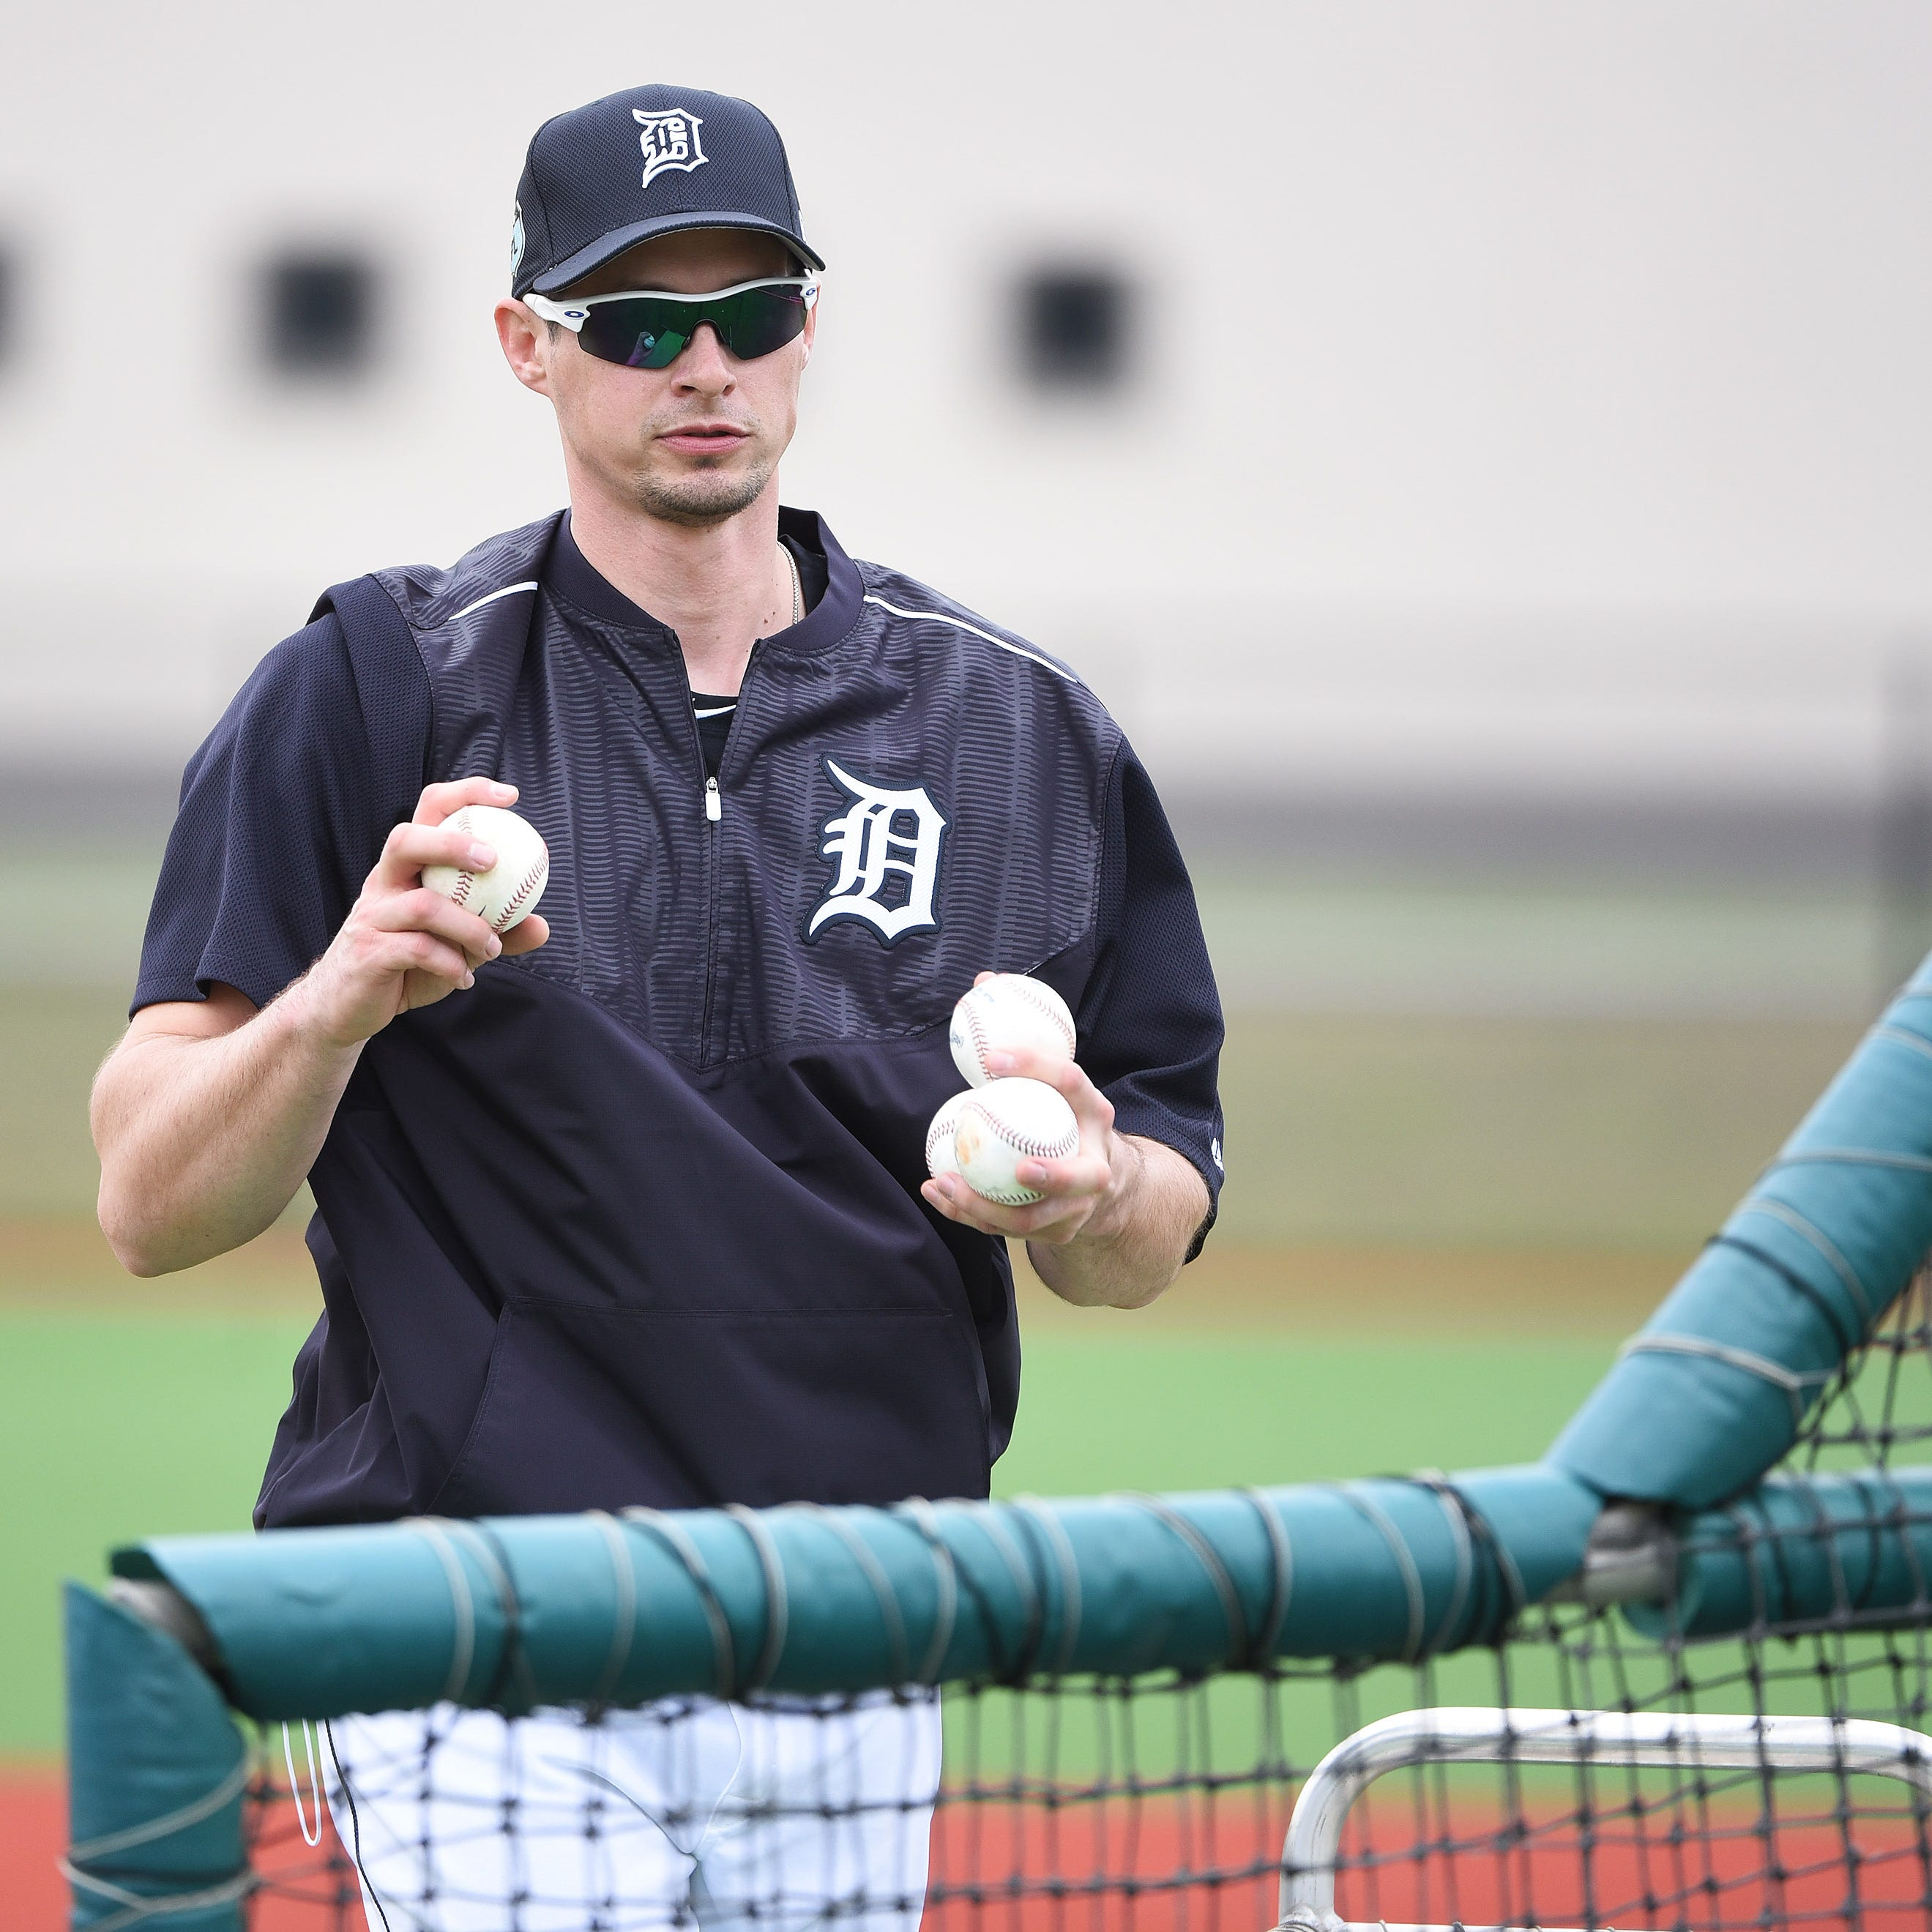 Don Kelly leaving Tigers to be Astros' first base coach